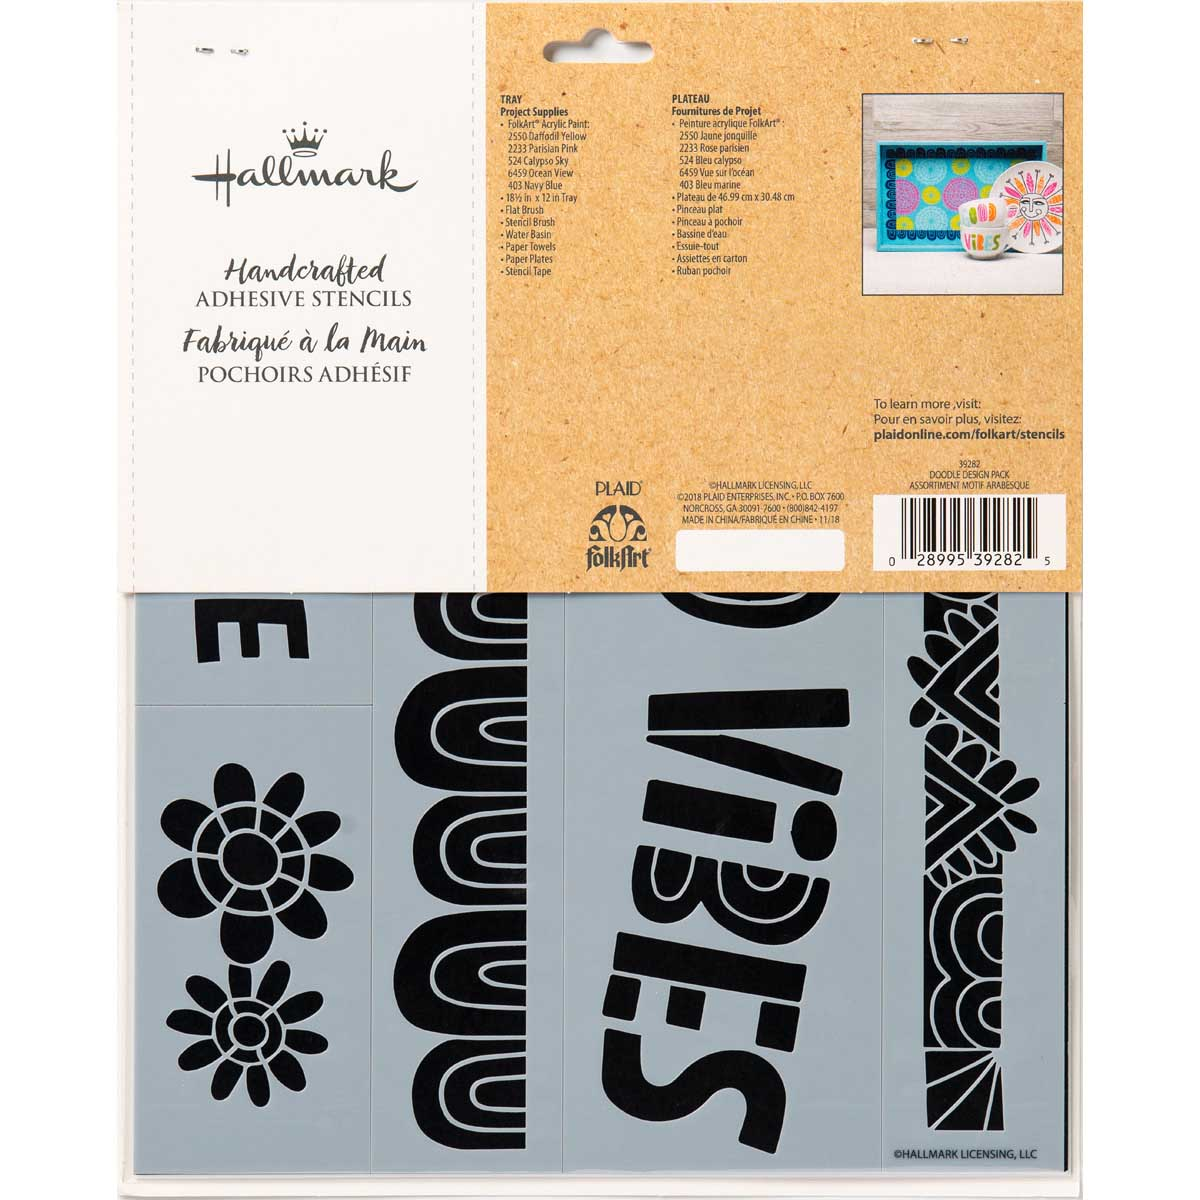 Hallmark Handcrafted Adhesive Stencils - Doodle Design Pack, 8-1/2